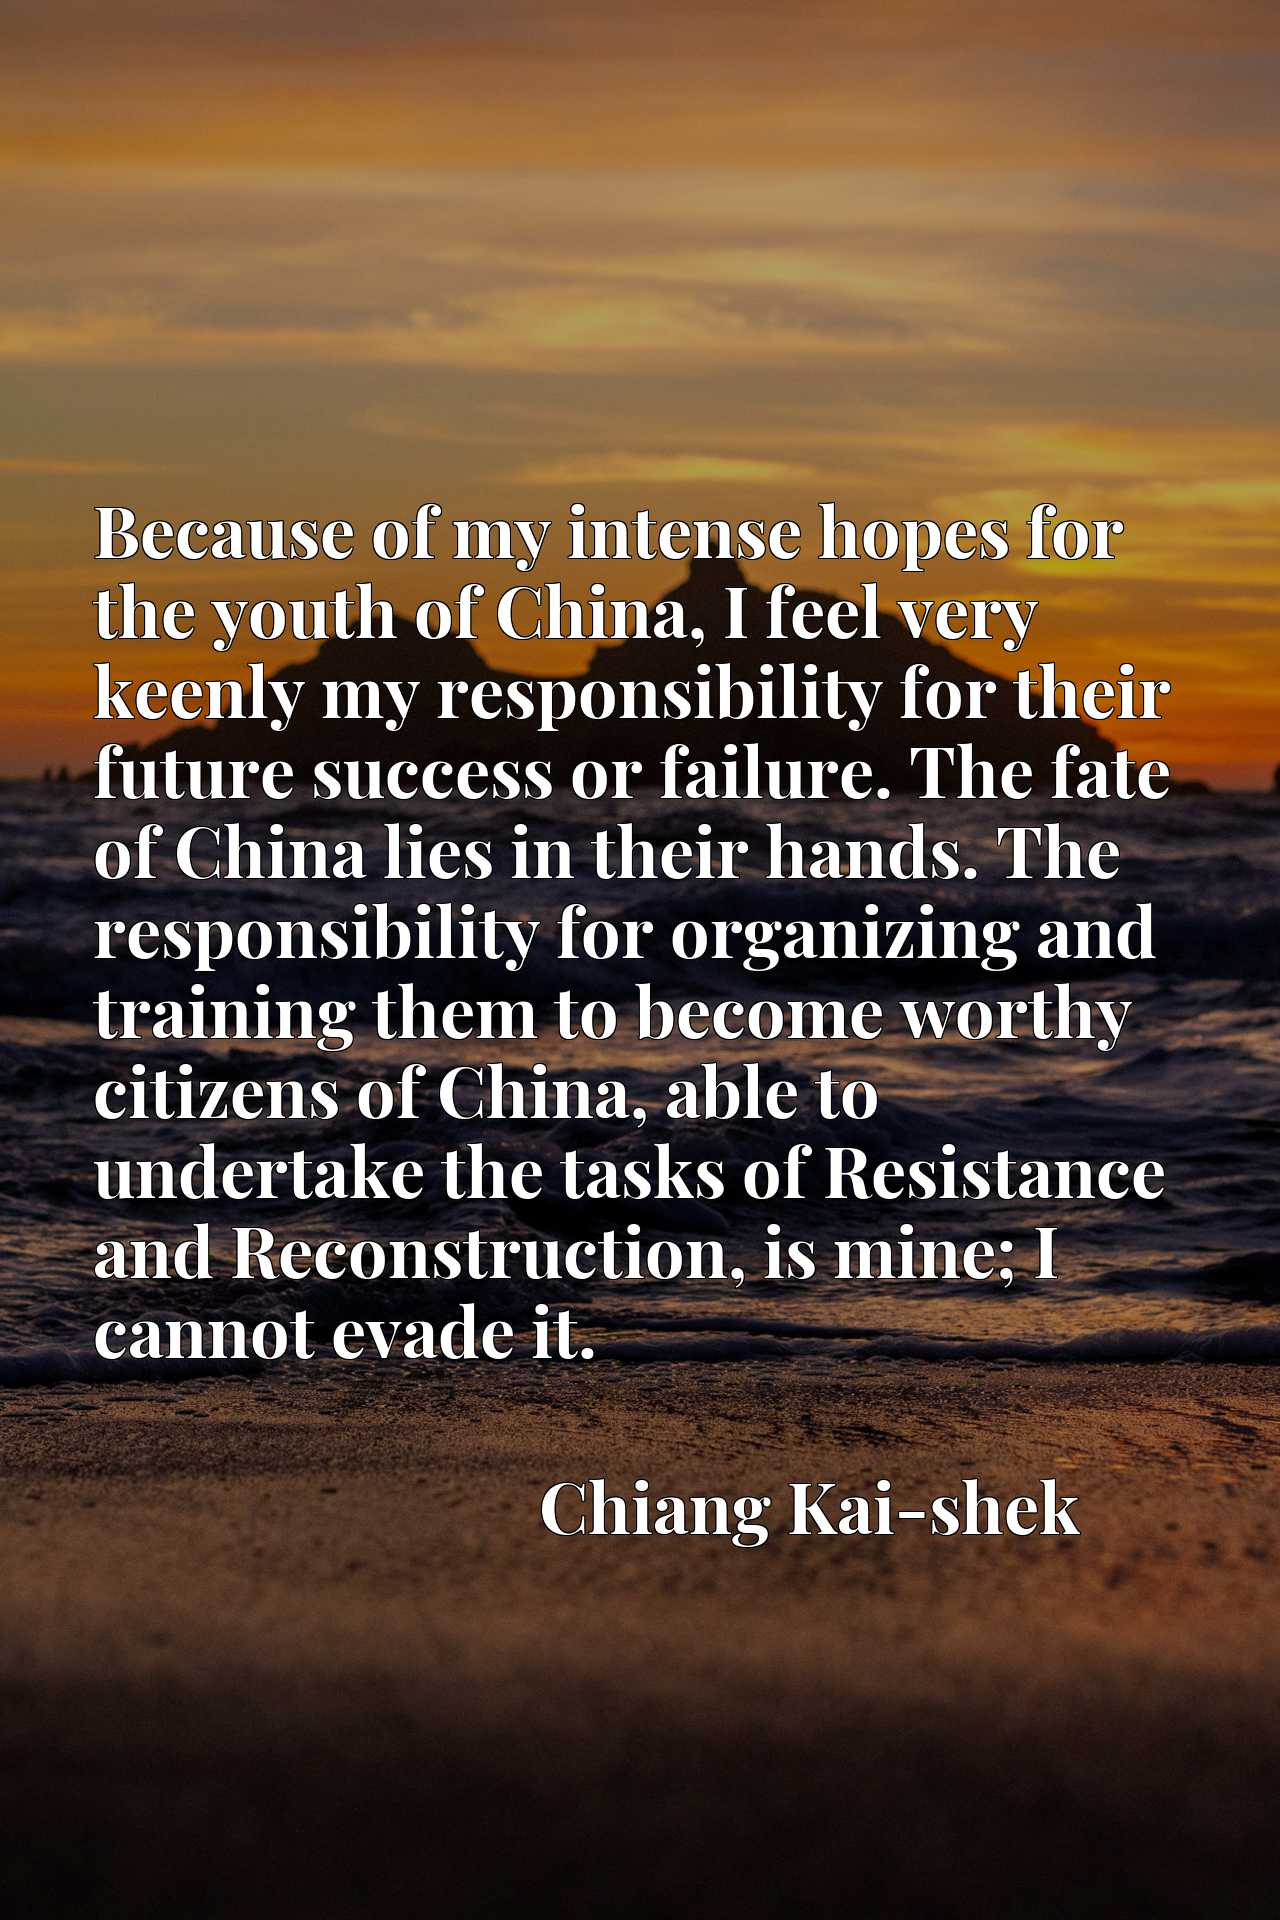 Because of my intense hopes for the youth of China, I feel very keenly my responsibility for their future success or failure. The fate of China lies in their hands. The responsibility for organizing and training them to become worthy citizens of China, able to undertake the tasks of Resistance and Reconstruction, is mine; I cannot evade it.